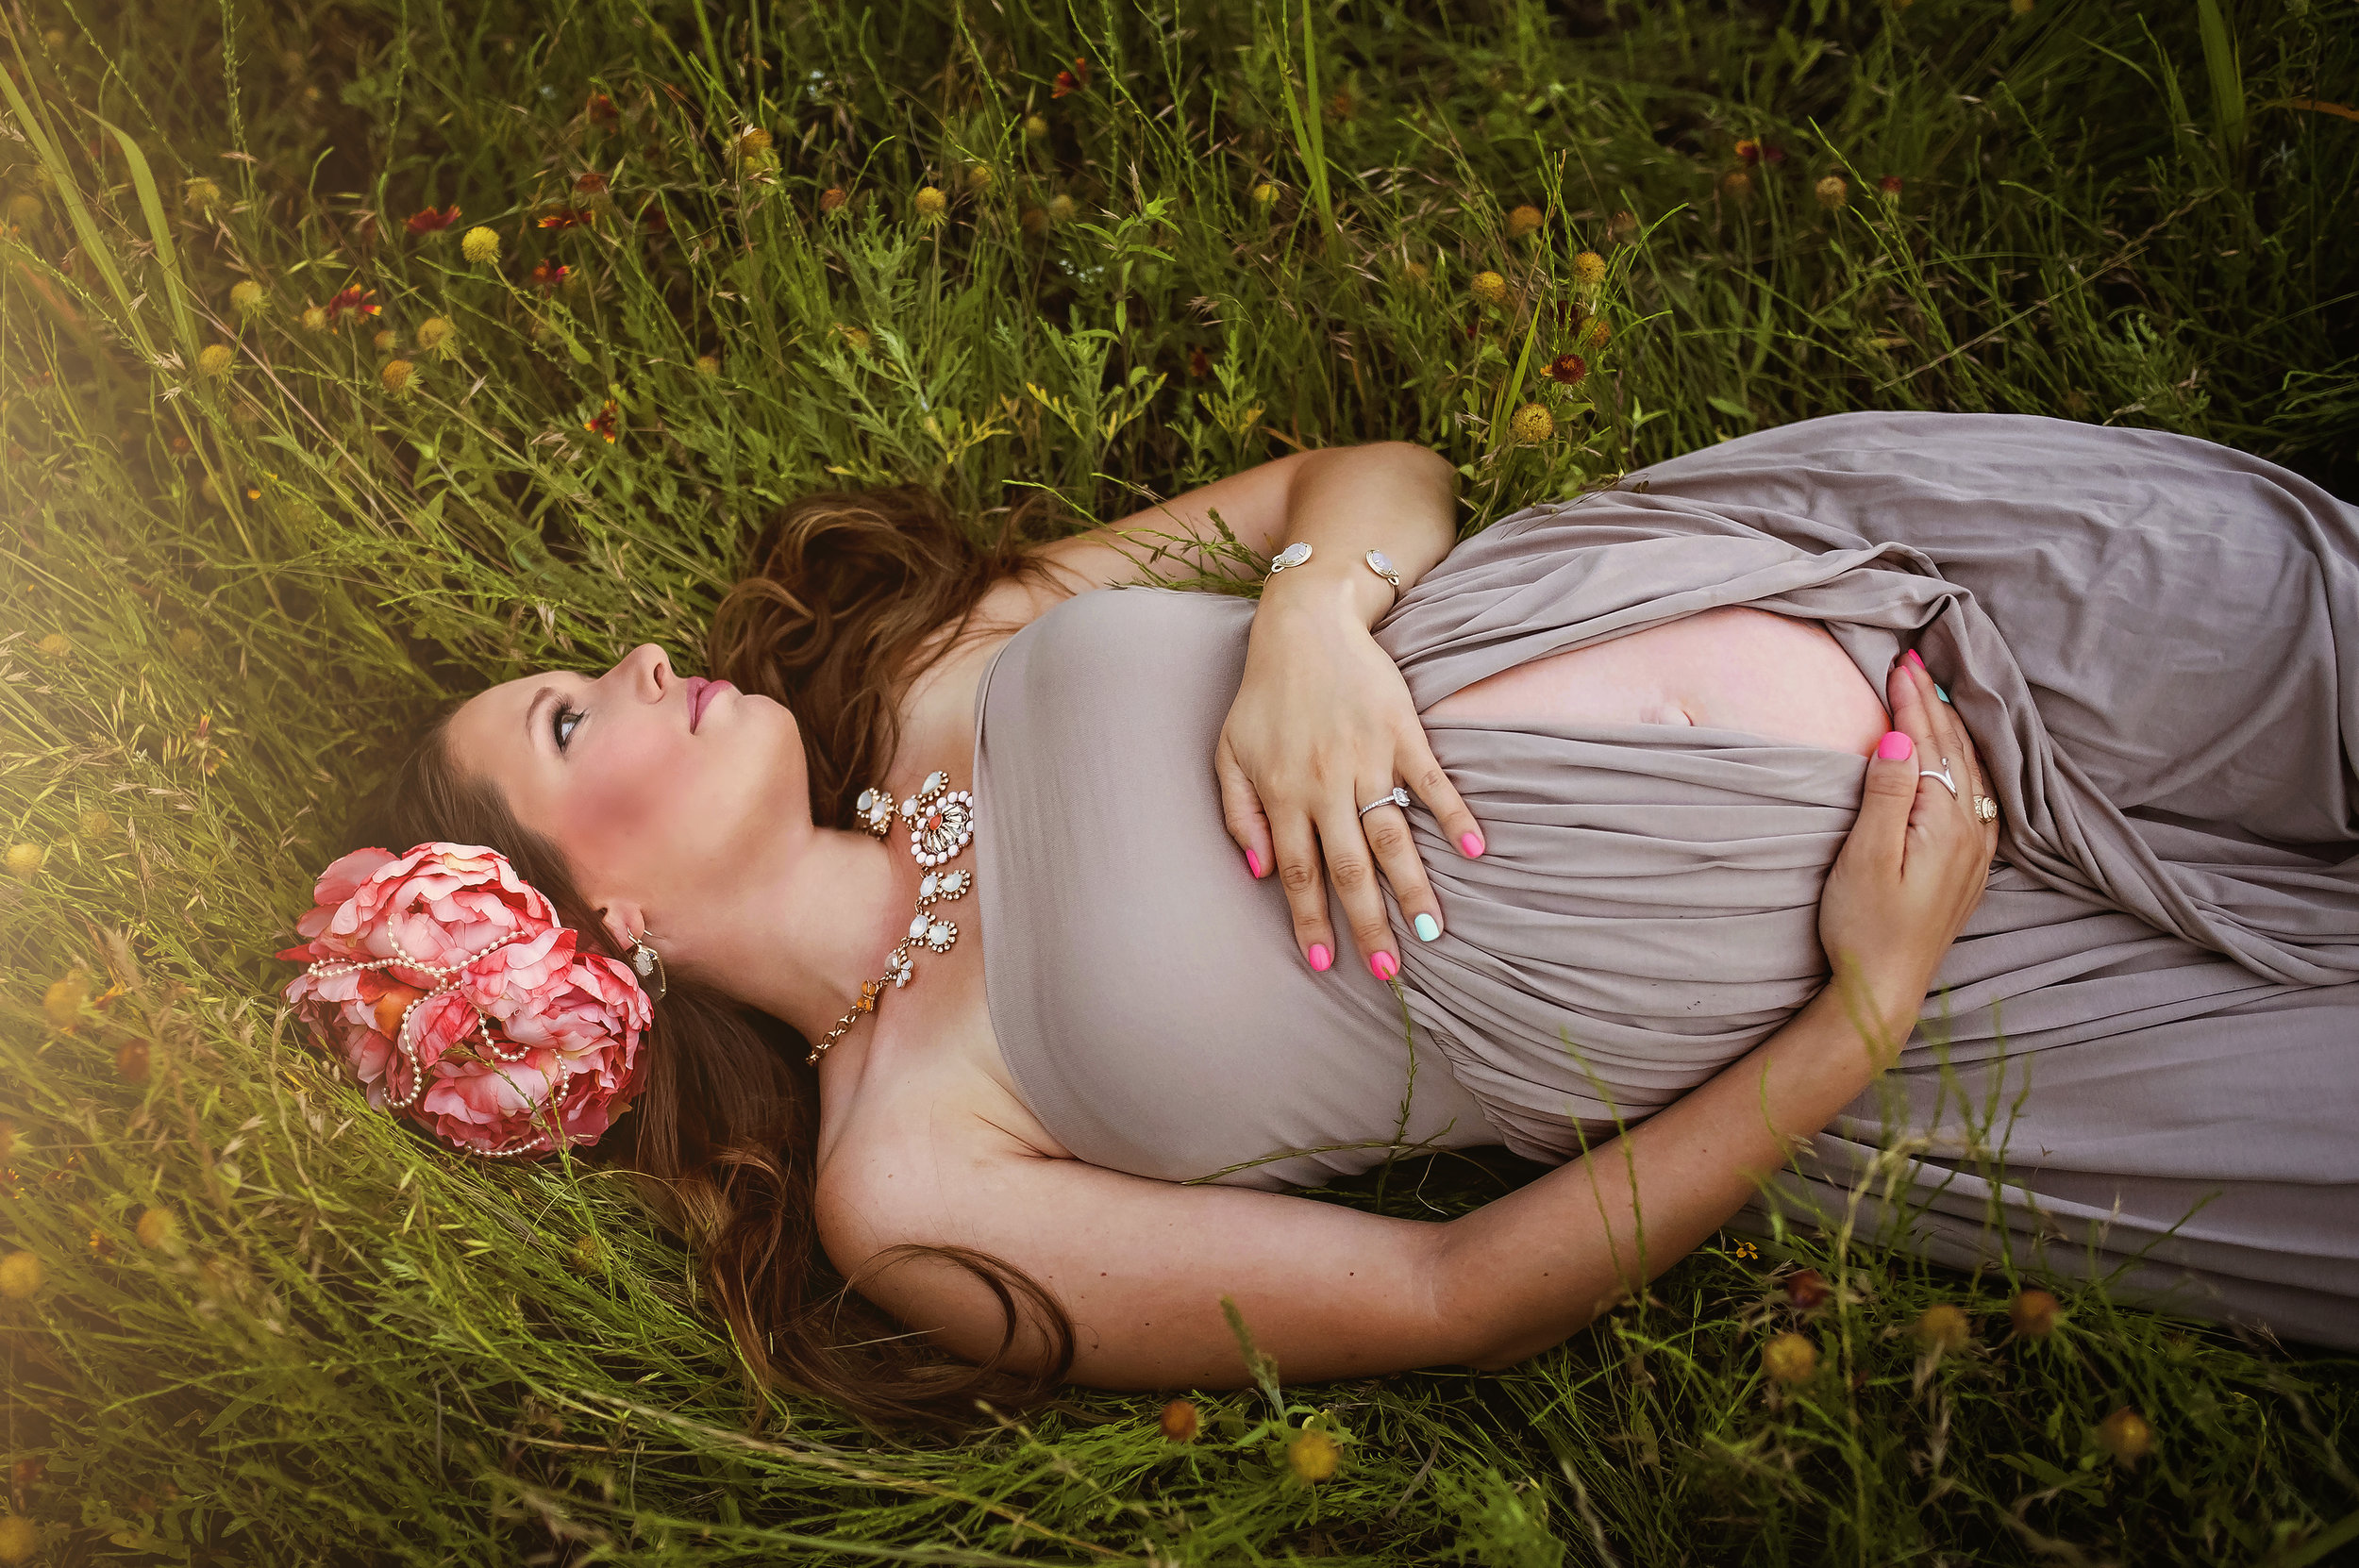 reina-legrand-photography-photographer-maternity-baby-haslet-colleyville-fort-worth-dallas-dfw-westlake-southlake-grapevine-keller-pointe.jpg